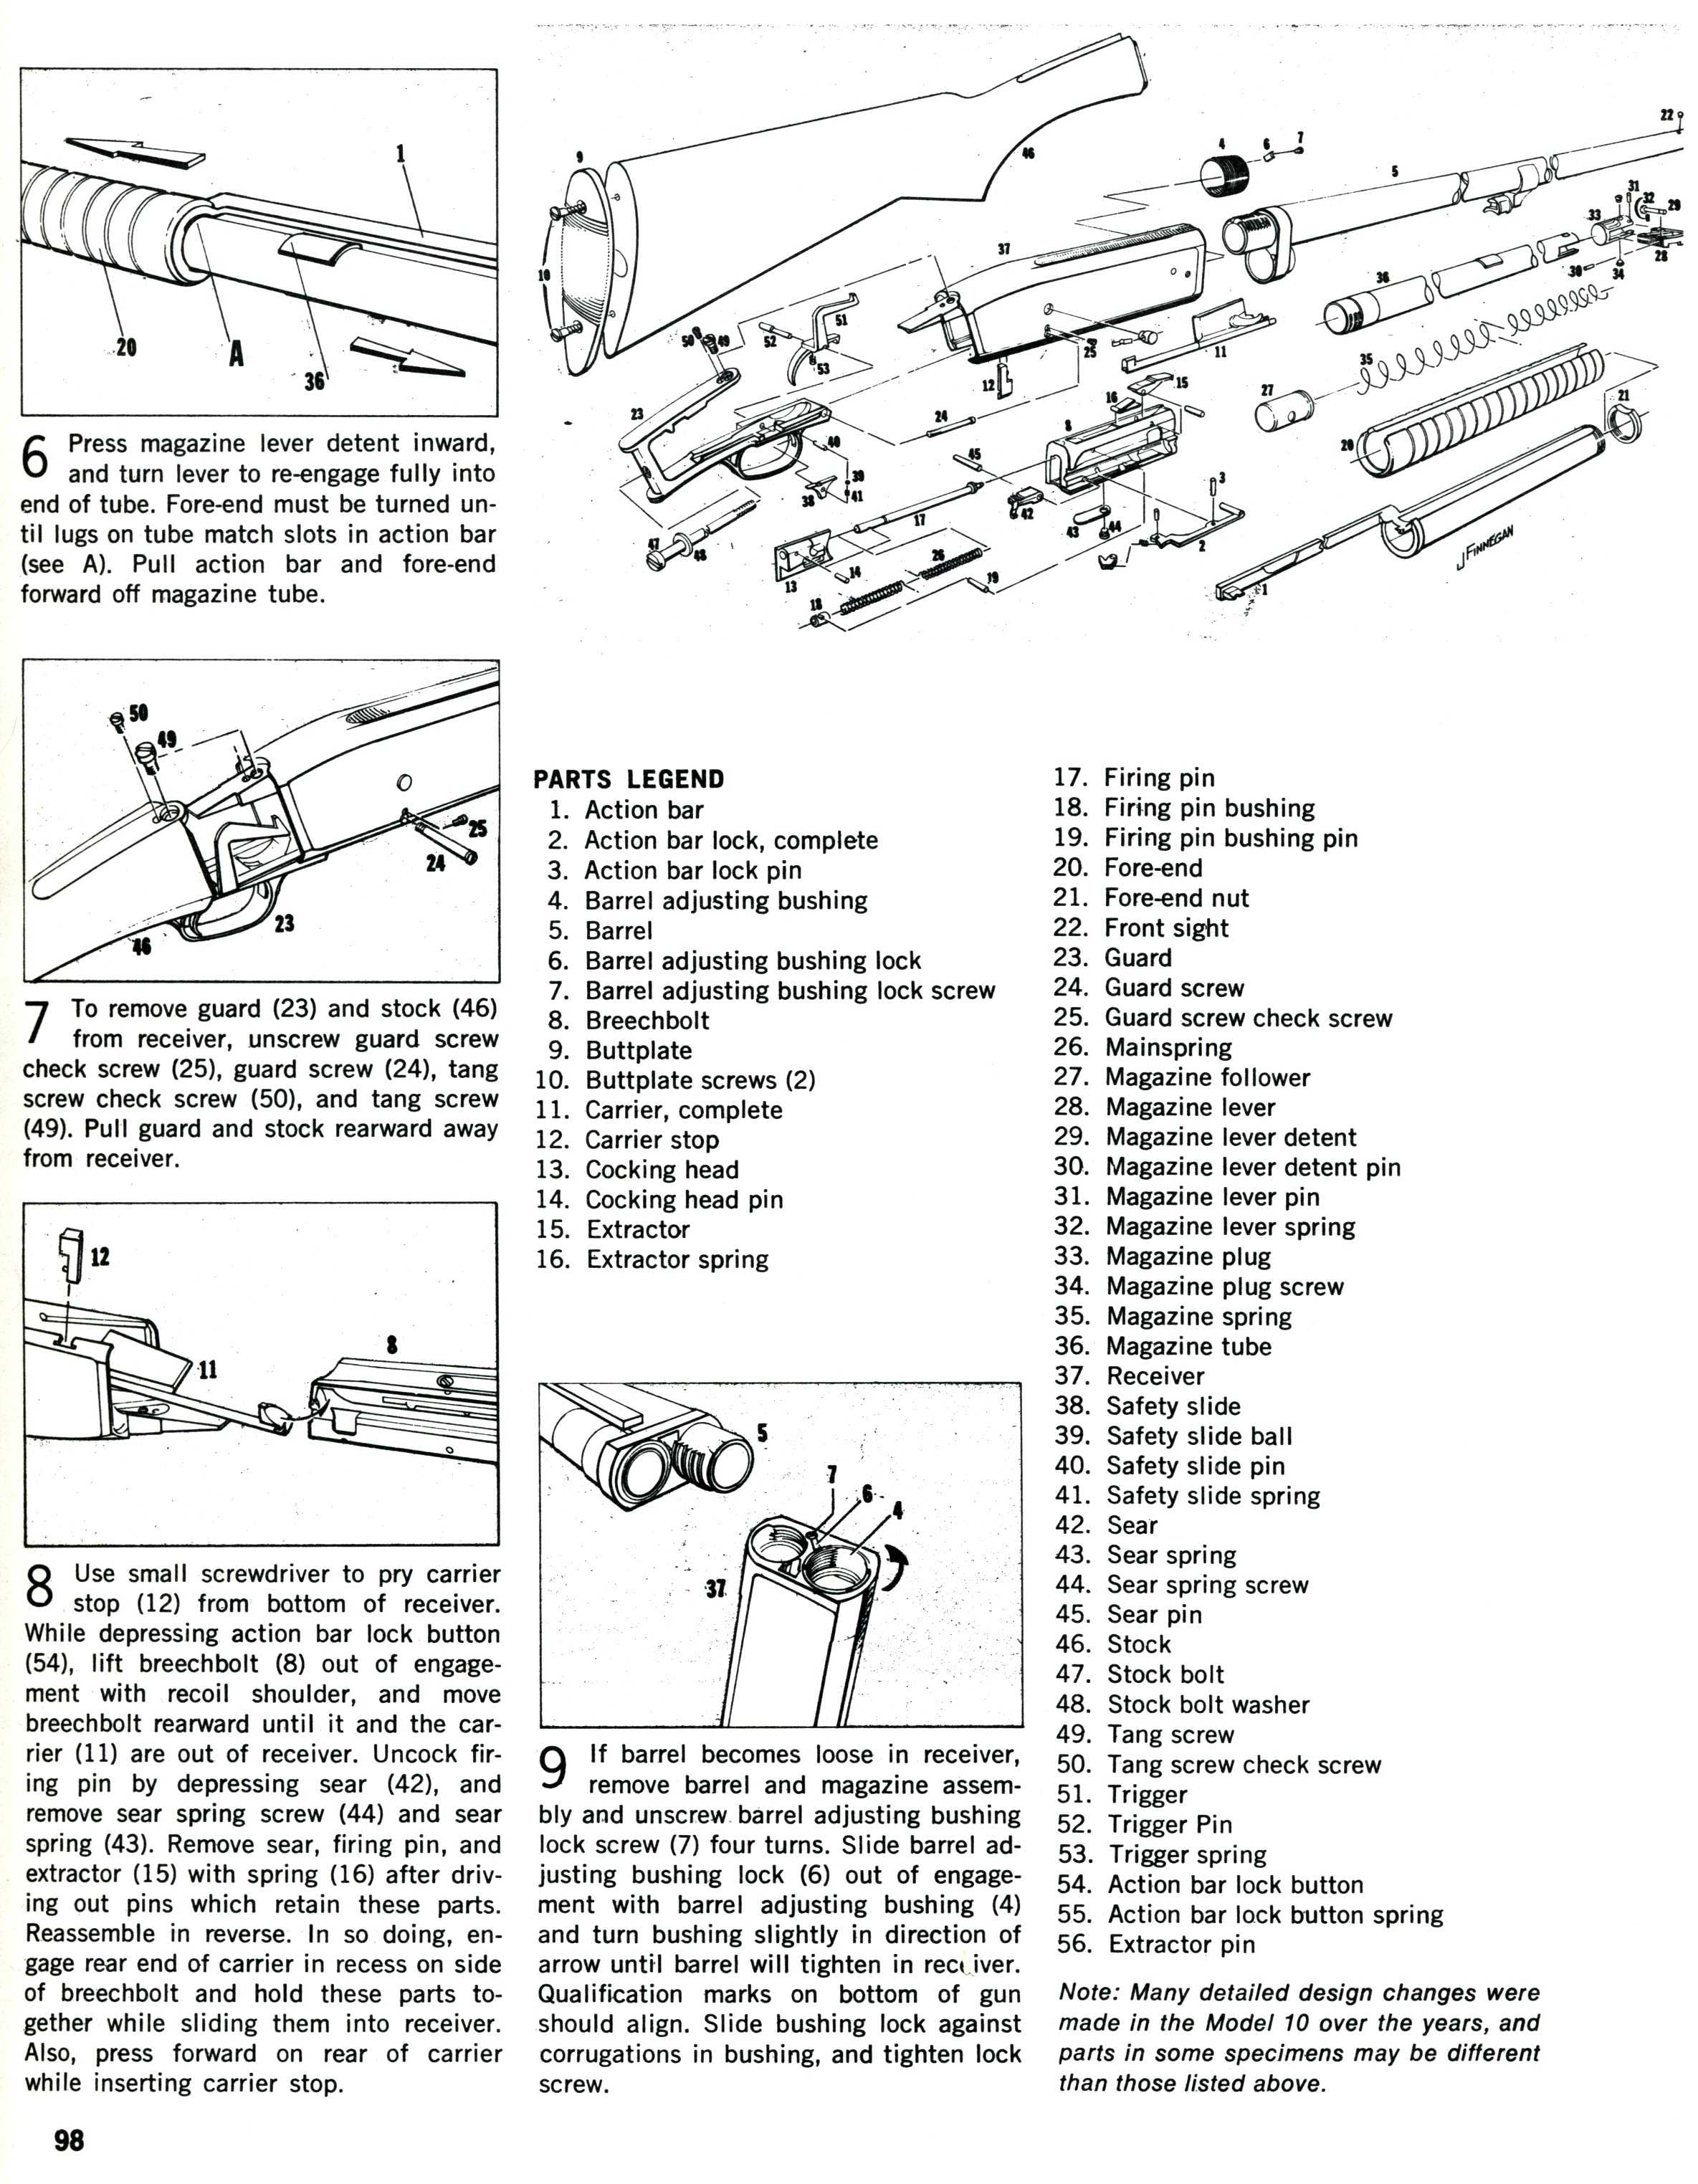 Need some help on how to dissassemble an old shotgun..........